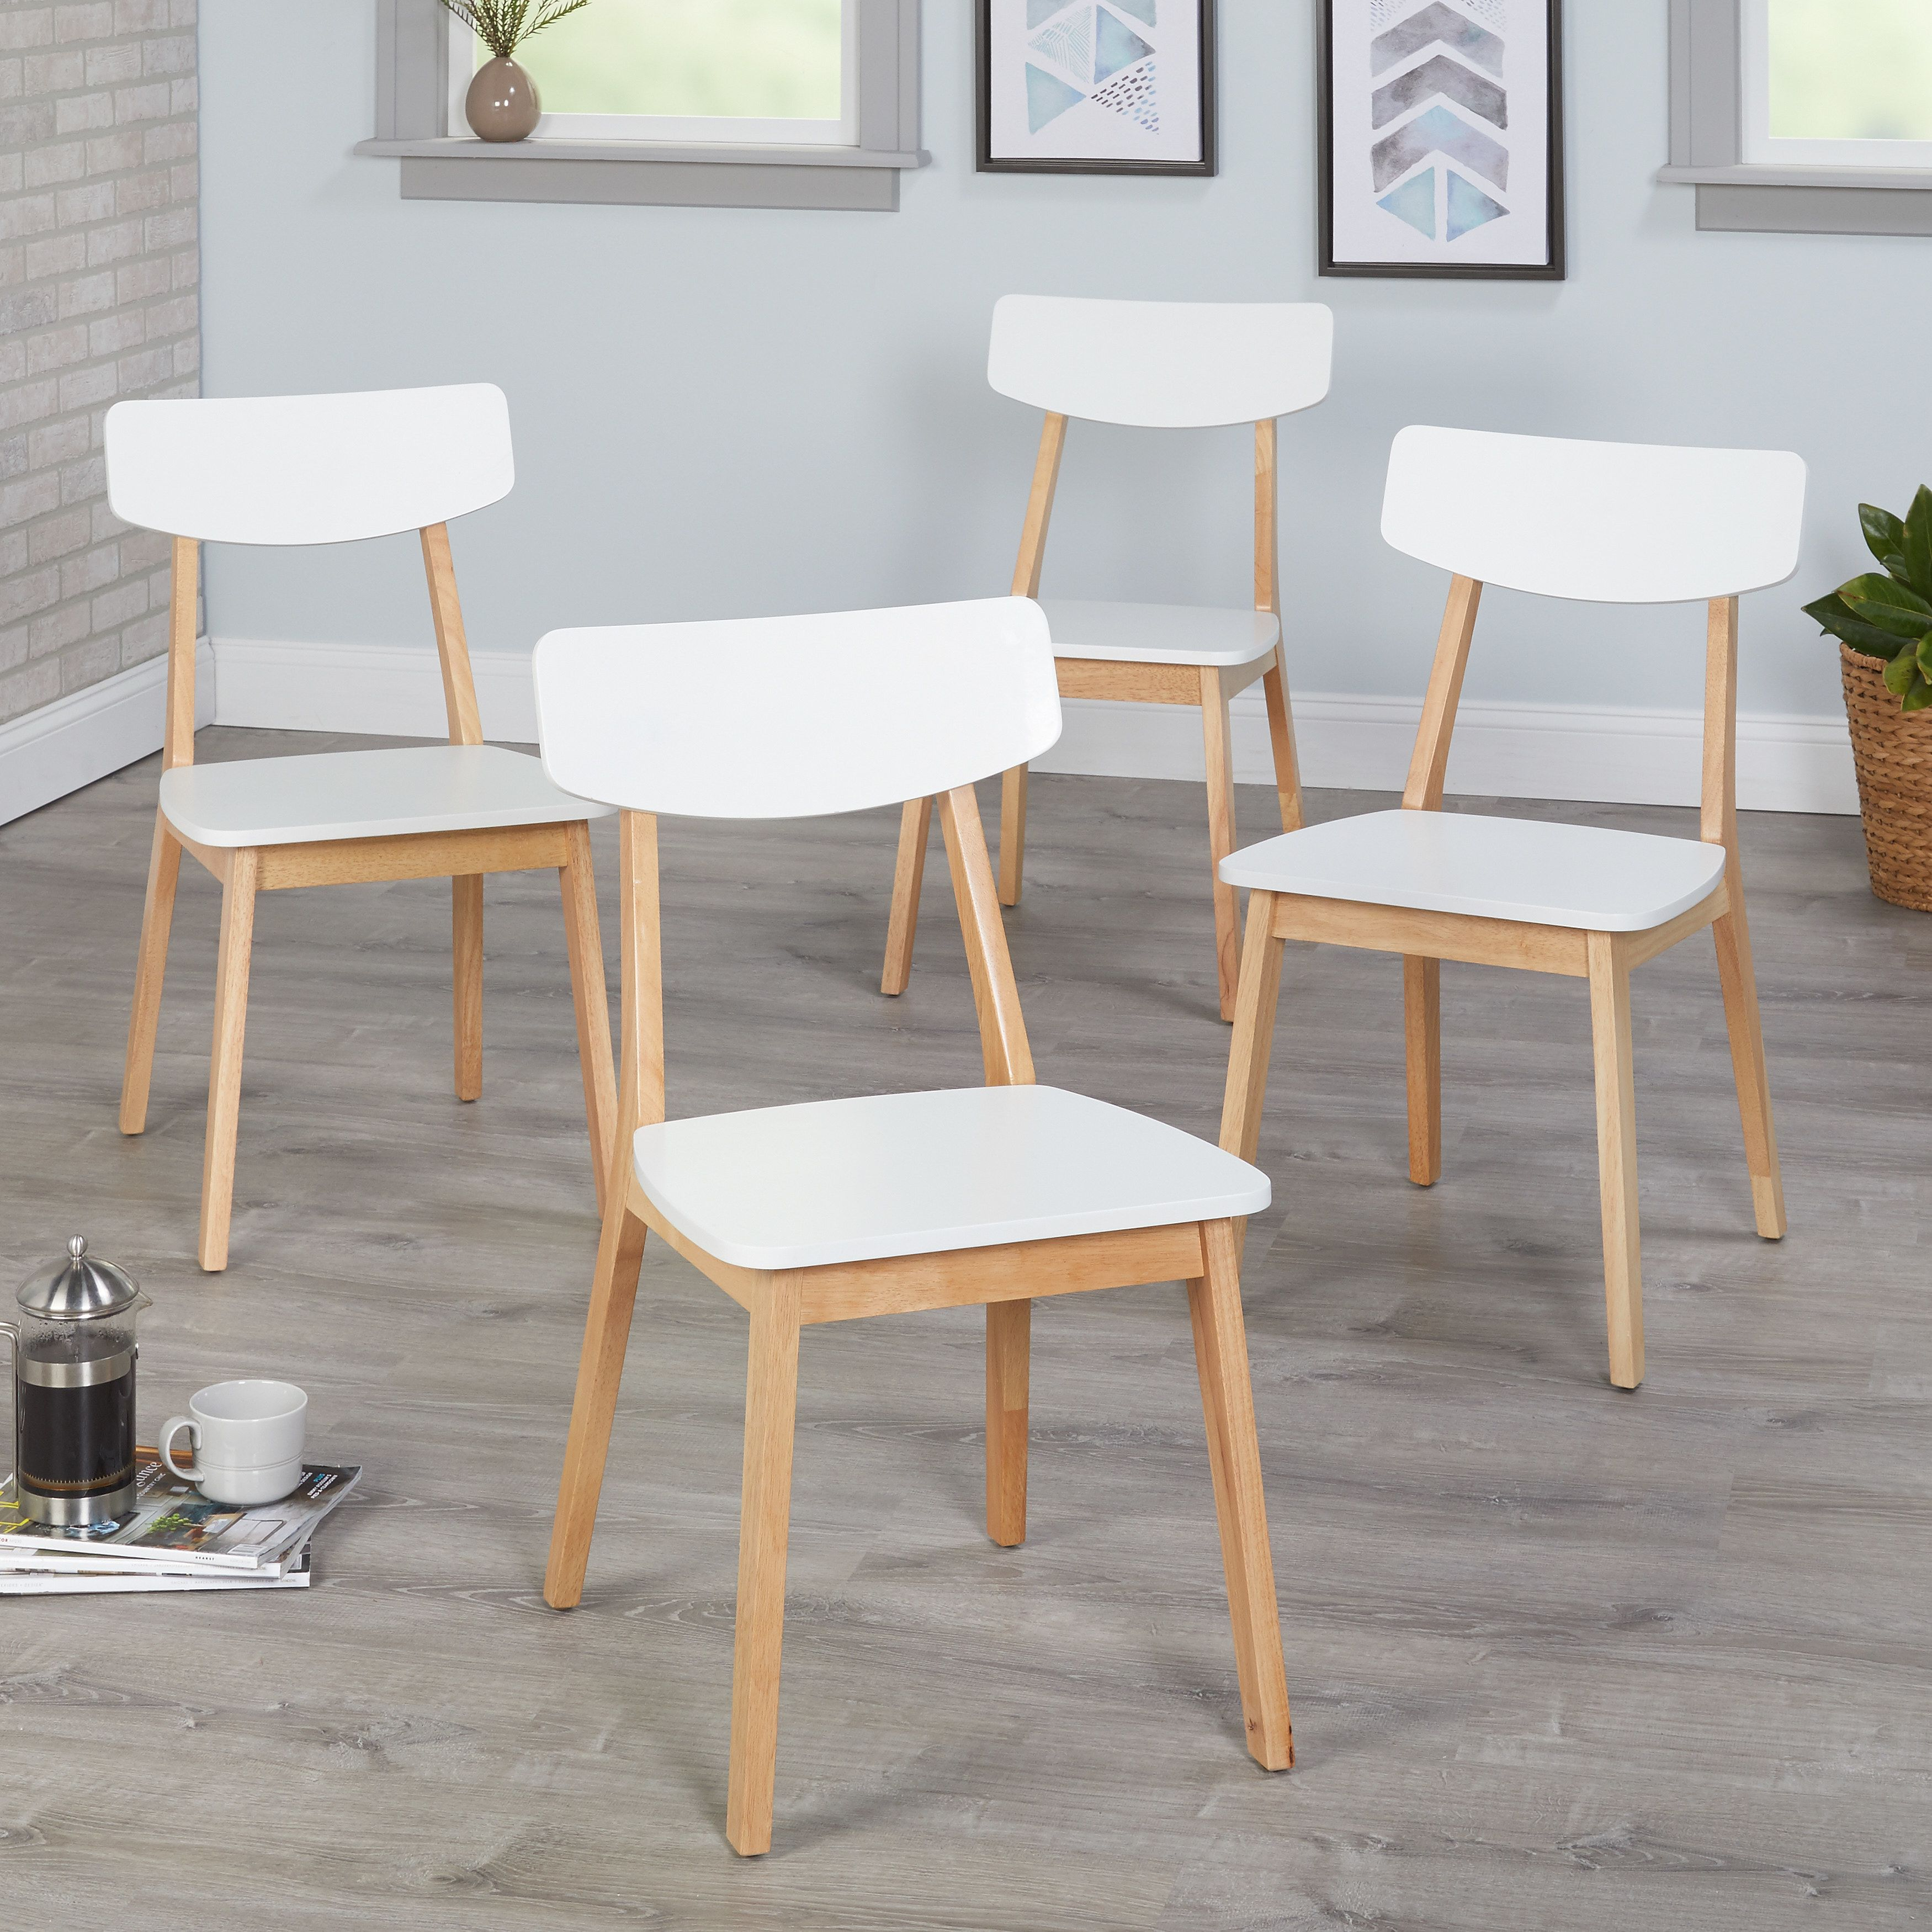 Excellent Simple Living Modern Dining Chairs Set Of 4 Modern Dining Creativecarmelina Interior Chair Design Creativecarmelinacom